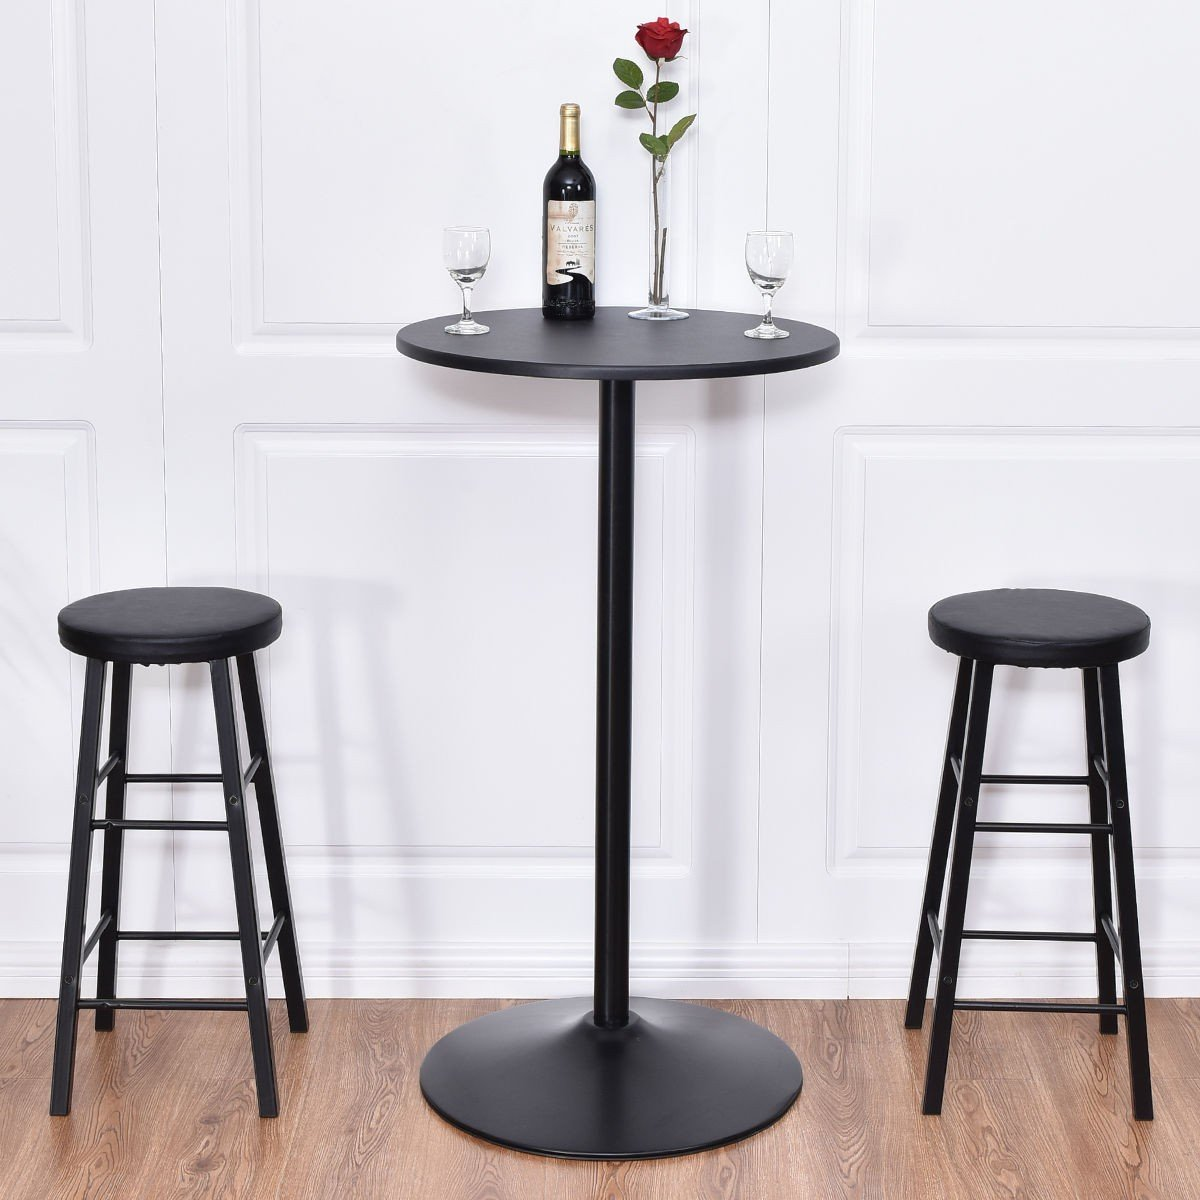 By Choice Products 3 pcs Round Bar Table Set w/ 2 Stools Bistro Pub by By Choice Products